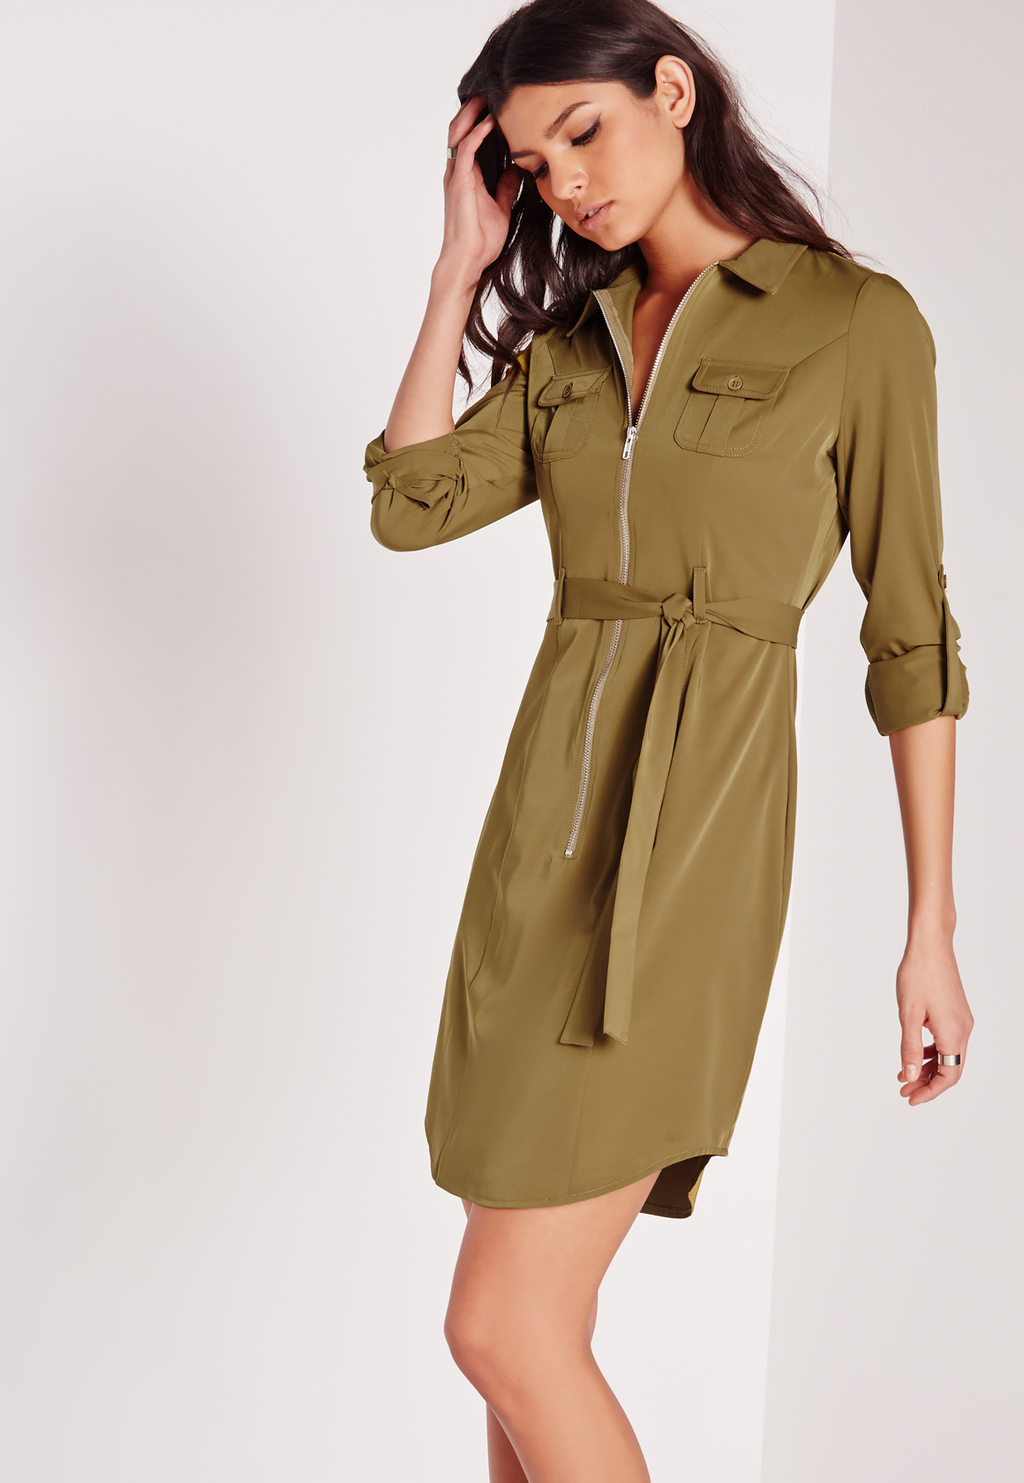 Tall Exclusive Zip Through Mini Shirt Dress Khaki, Beige - style: shirt; neckline: shirt collar/peter pan/zip with opening; pattern: plain; waist detail: belted waist/tie at waist/drawstring; predominant colour: khaki; occasions: casual; length: just above the knee; fit: body skimming; fibres: viscose/rayon - 100%; sleeve length: 3/4 length; sleeve style: standard; pattern type: fabric; texture group: other - light to midweight; embellishment: zips; season: s/s 2016; wardrobe: highlight; embellishment location: bust